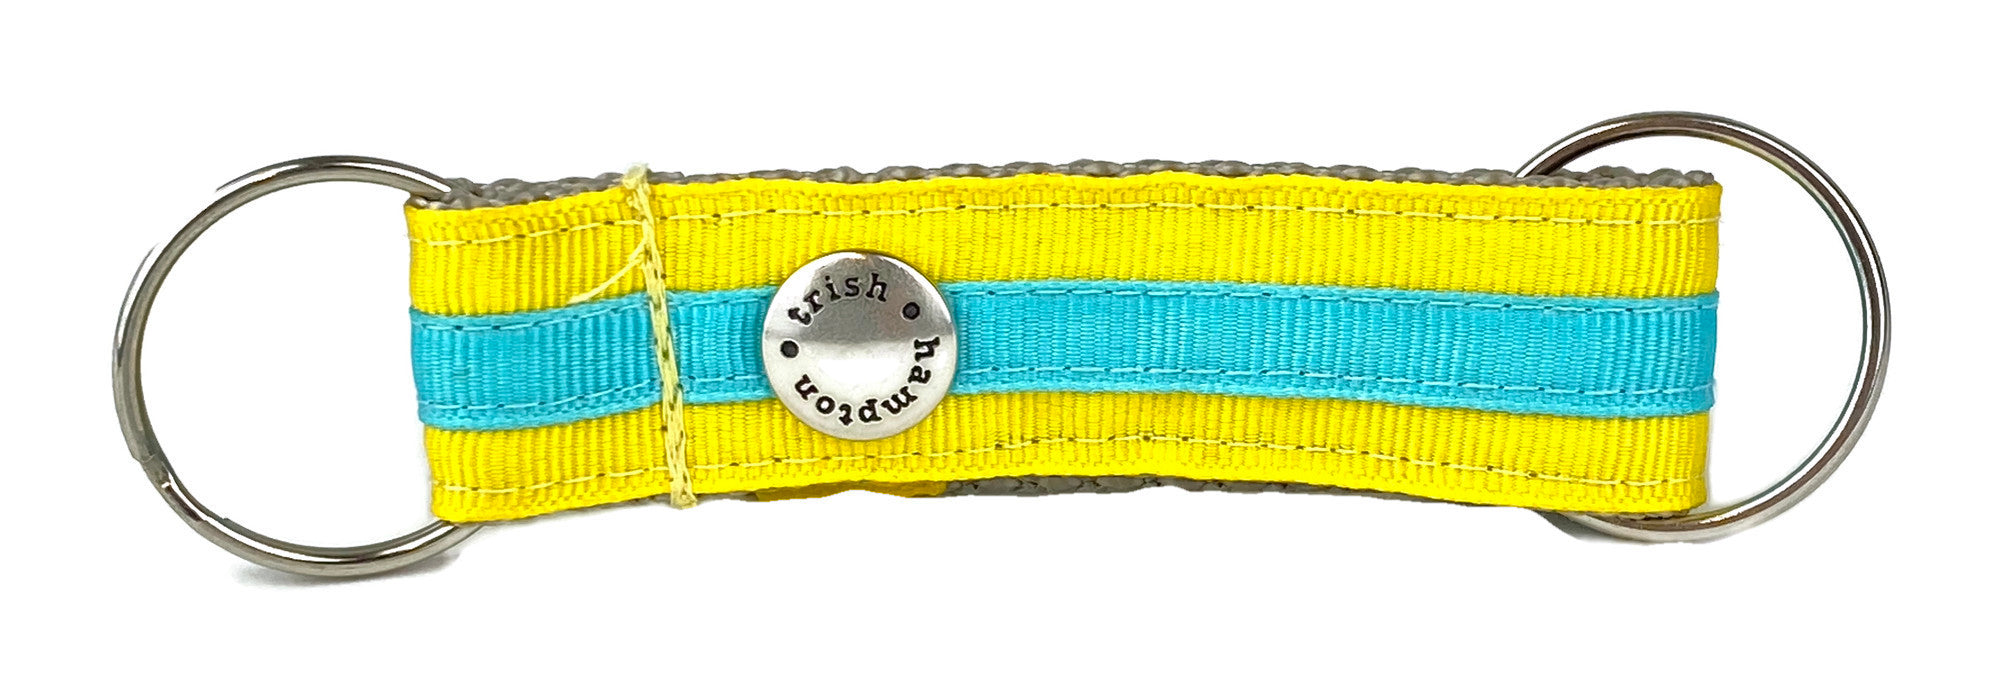 Yellow/Turquoise Stripe Snappy Keychain - 318